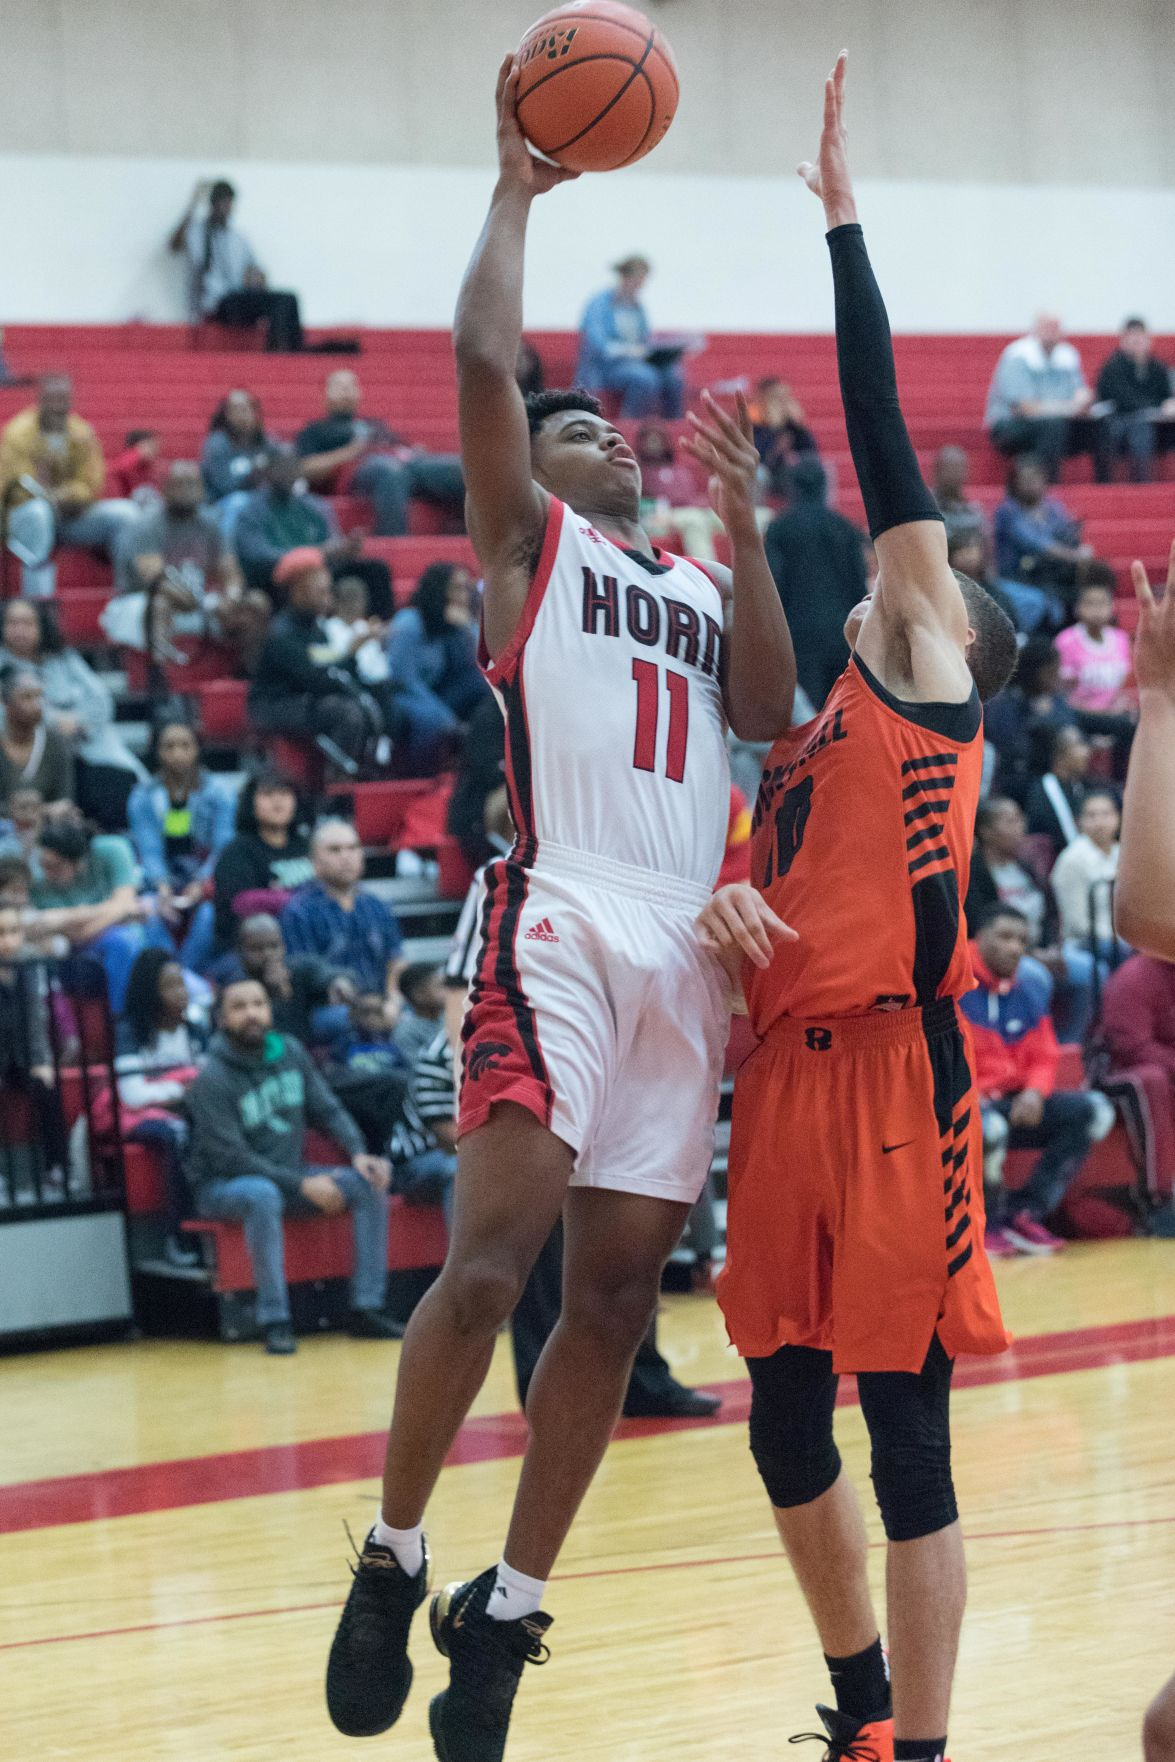 HORN BOYS BASKETBALL ZAAKIR SAWYER